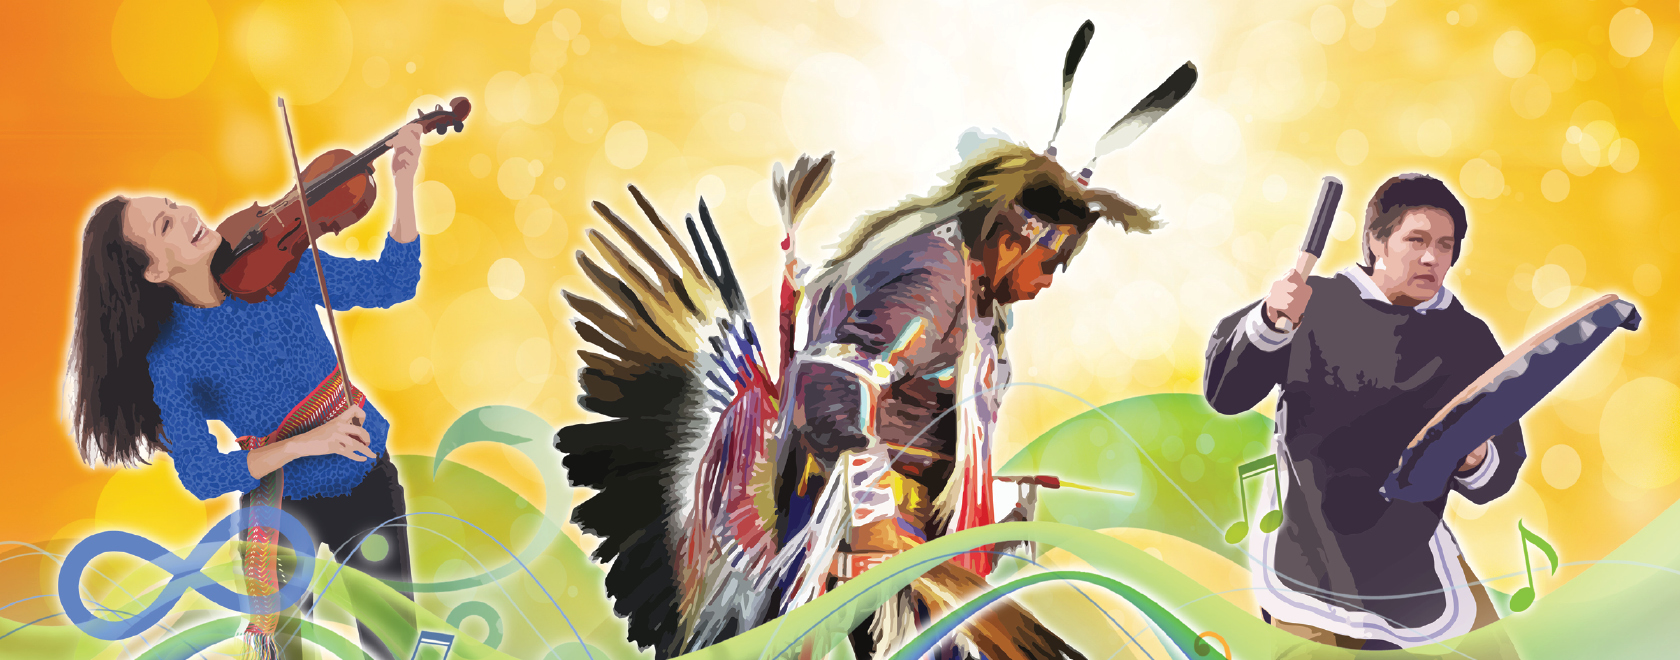 NATIONAL INDIGENOUS PEOPLES DAY – JUNE 21, 2020